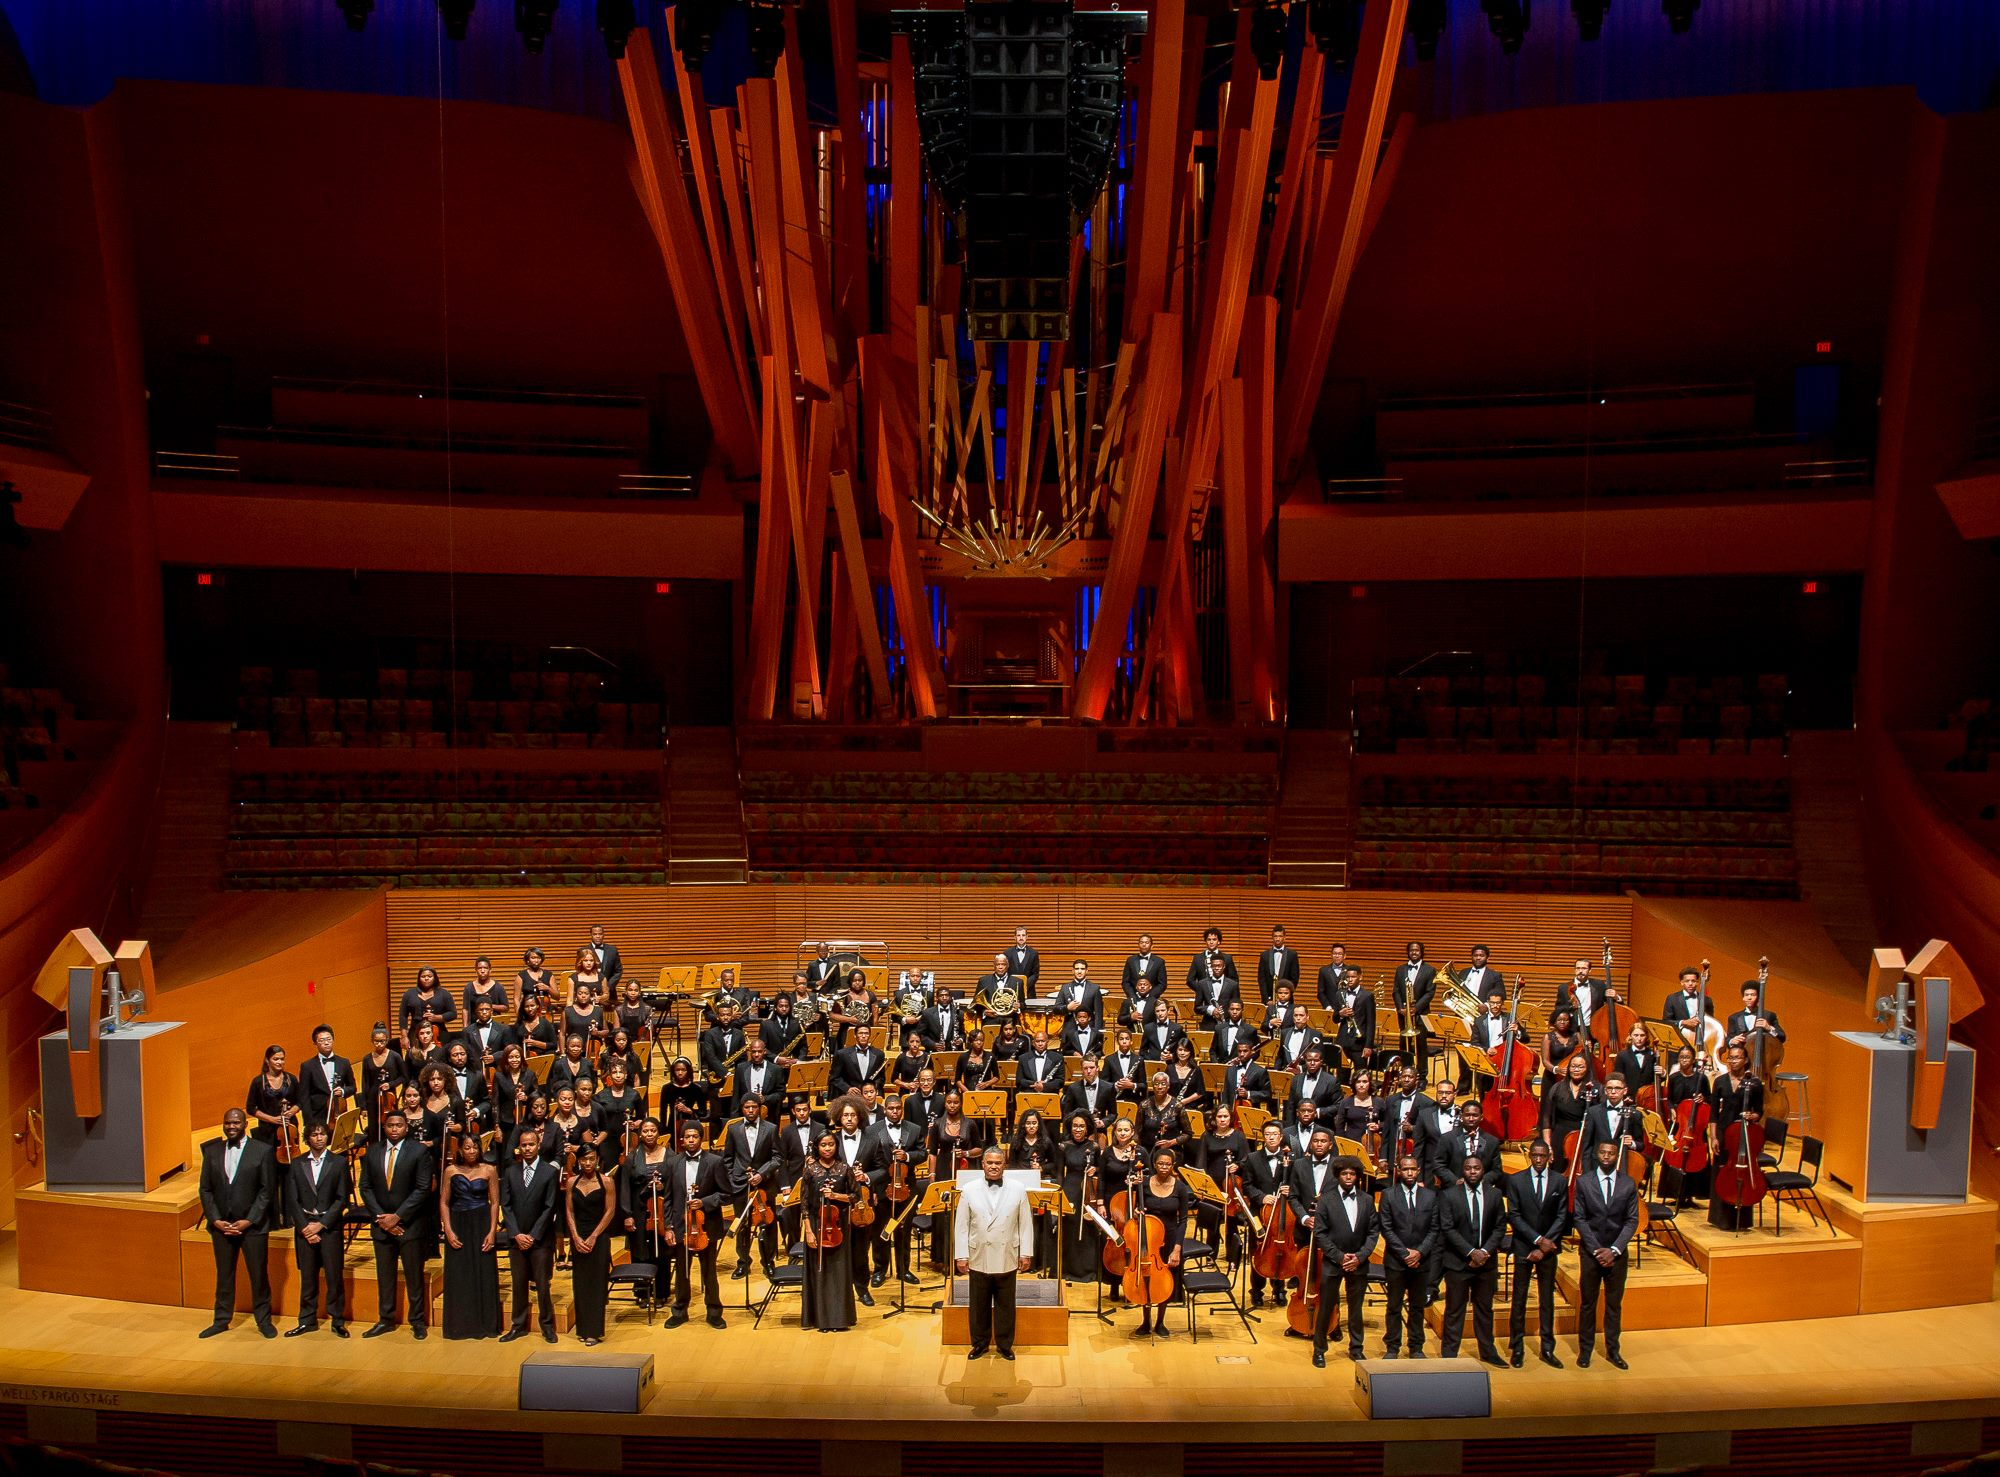 The Katalyst Rhythm Section (Standing to the right) and the Inner City Youth Orchestra of Los Angeles